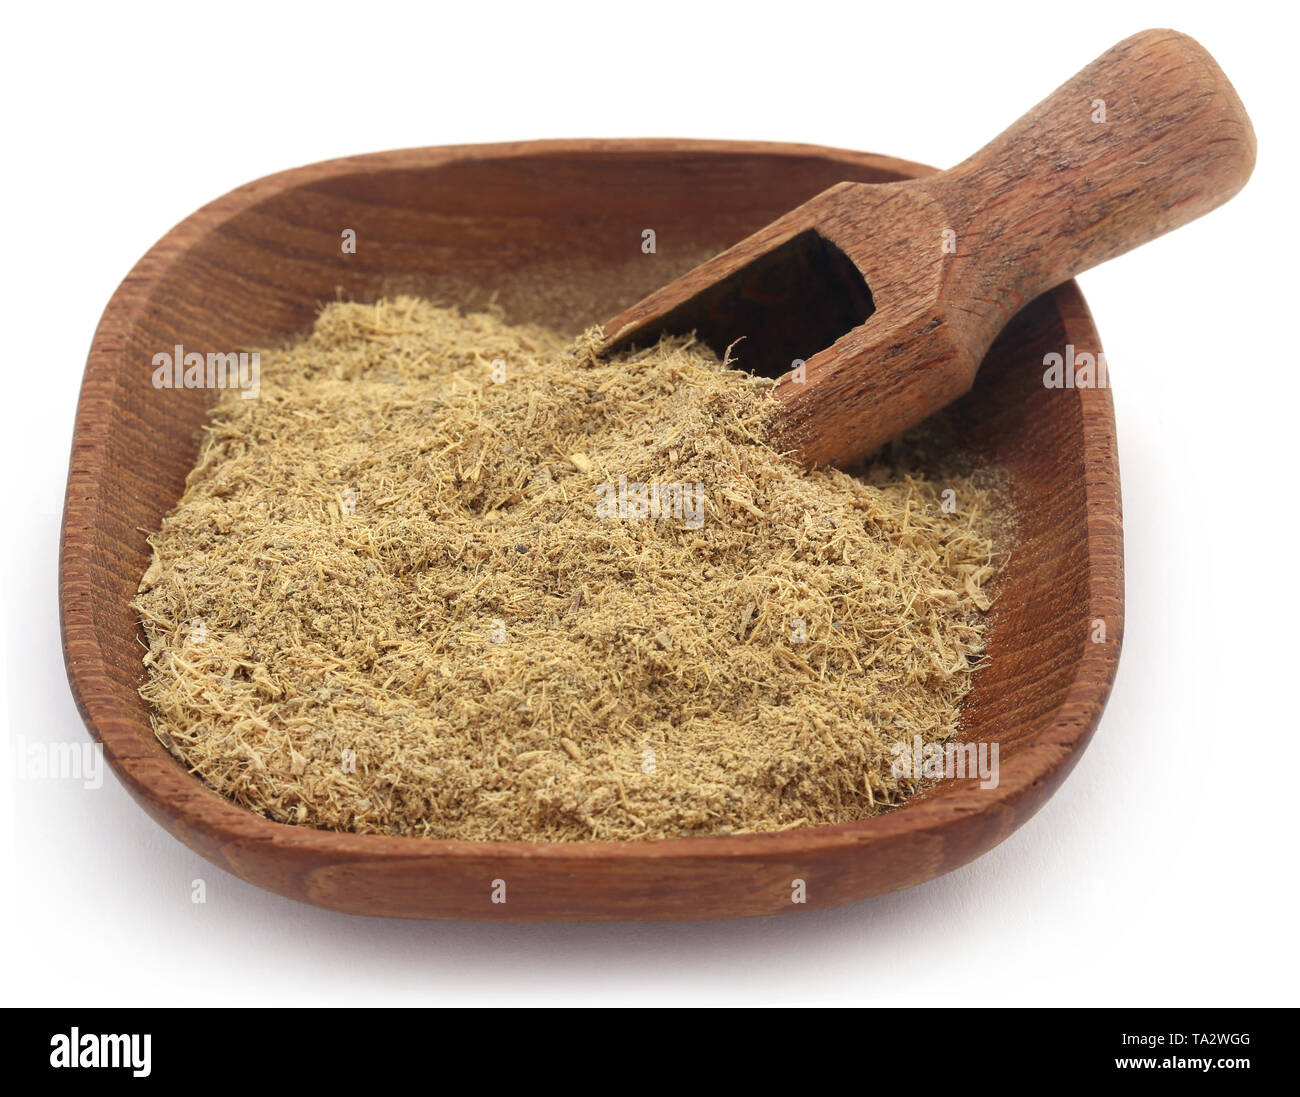 Liquorice stick and ground powder in a bowl over white - Stock Image